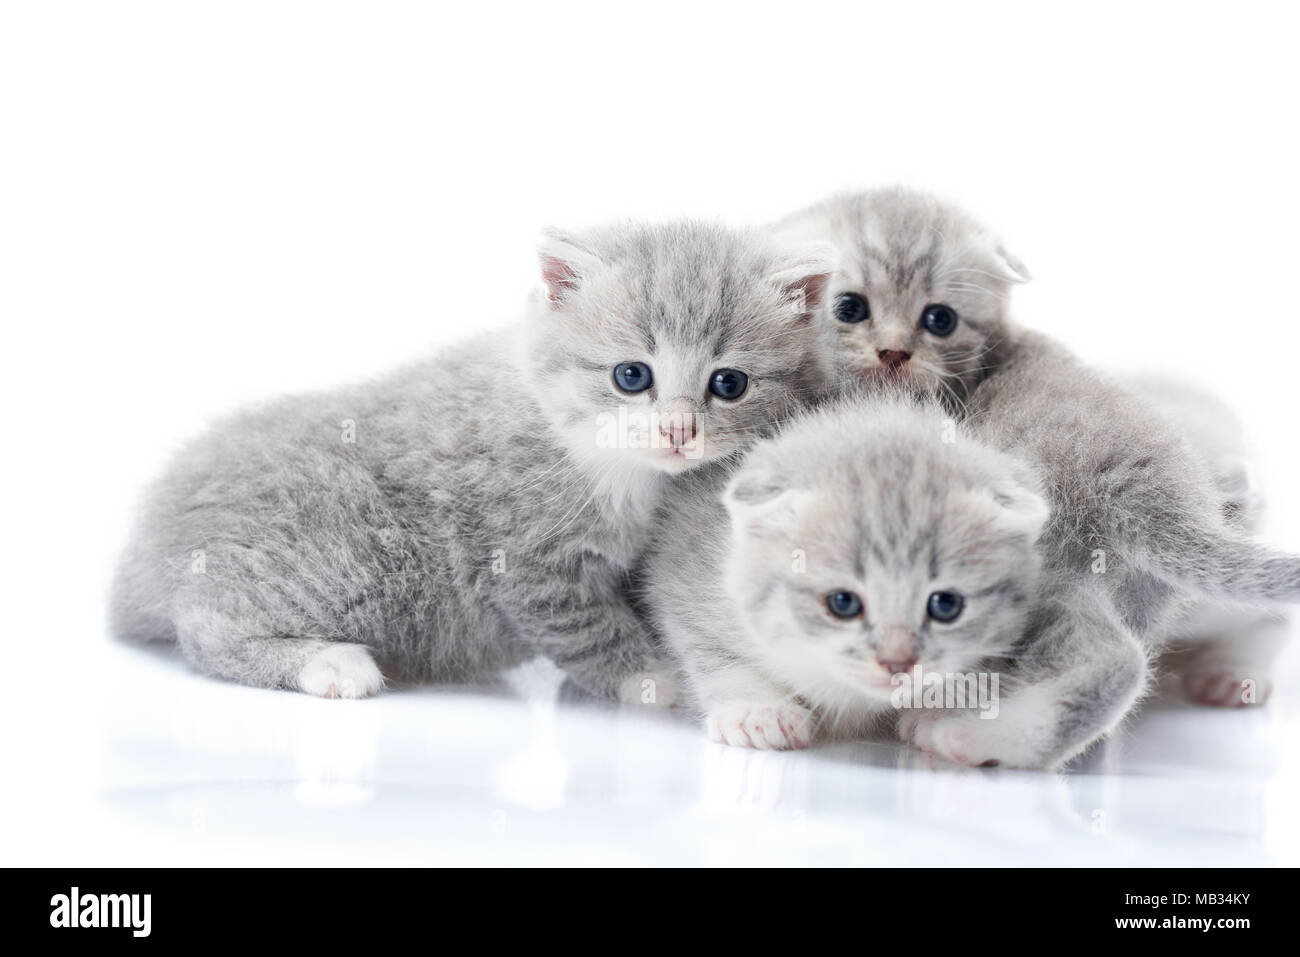 Newborn grey fluffy kittens looking to the camera while playing together and exploring the world around them. Studio photoshoot. Photoset gray cute adorable funny cats love happiness - Stock Image